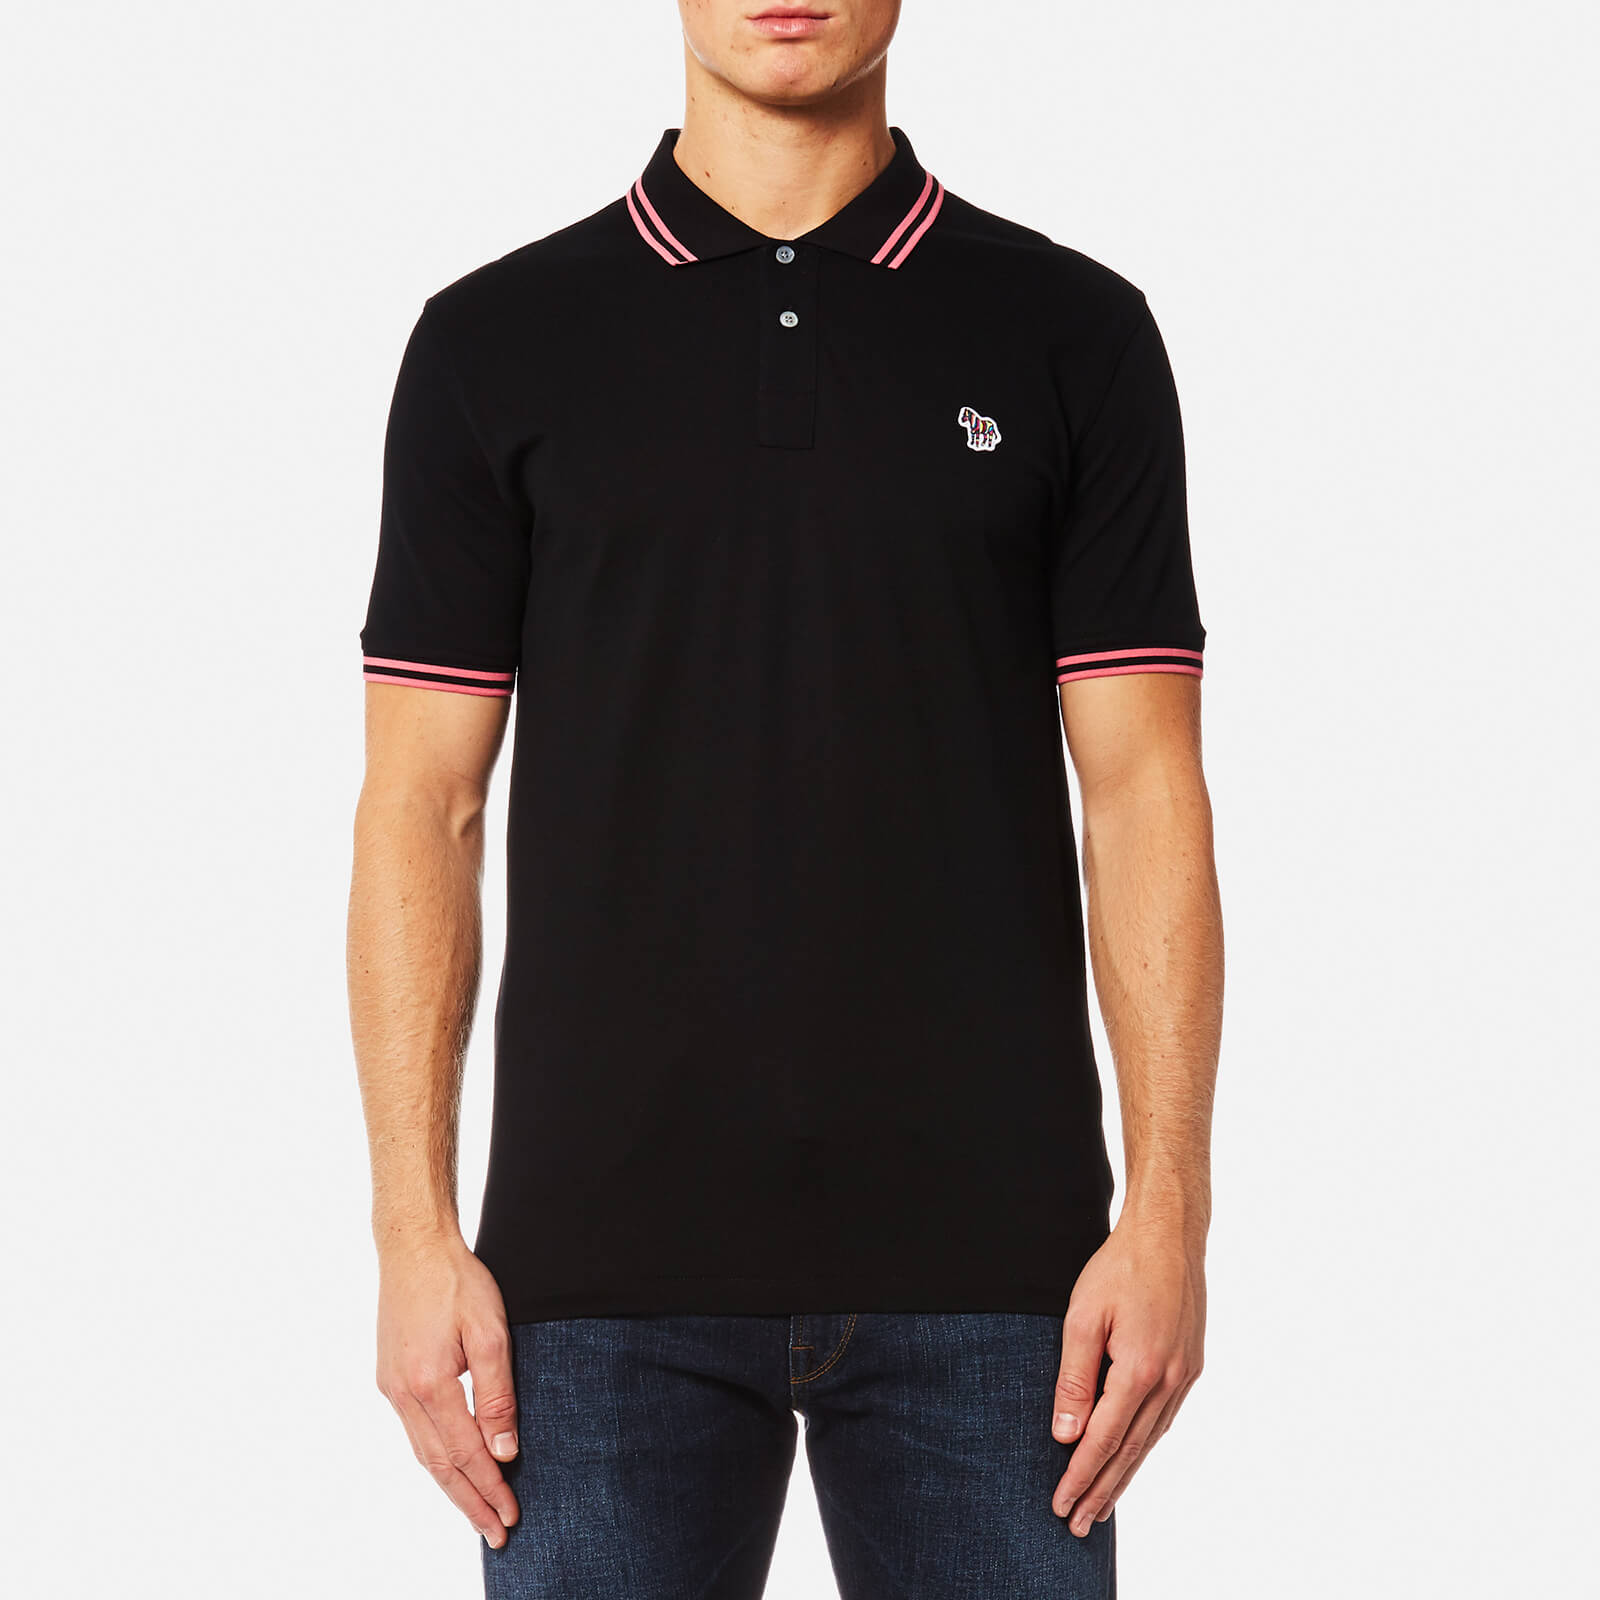 b4b77e8efd PS by Paul Smith Men's Zebra Logo Tipped Polo Shirt - Black - Free UK  Delivery over £50